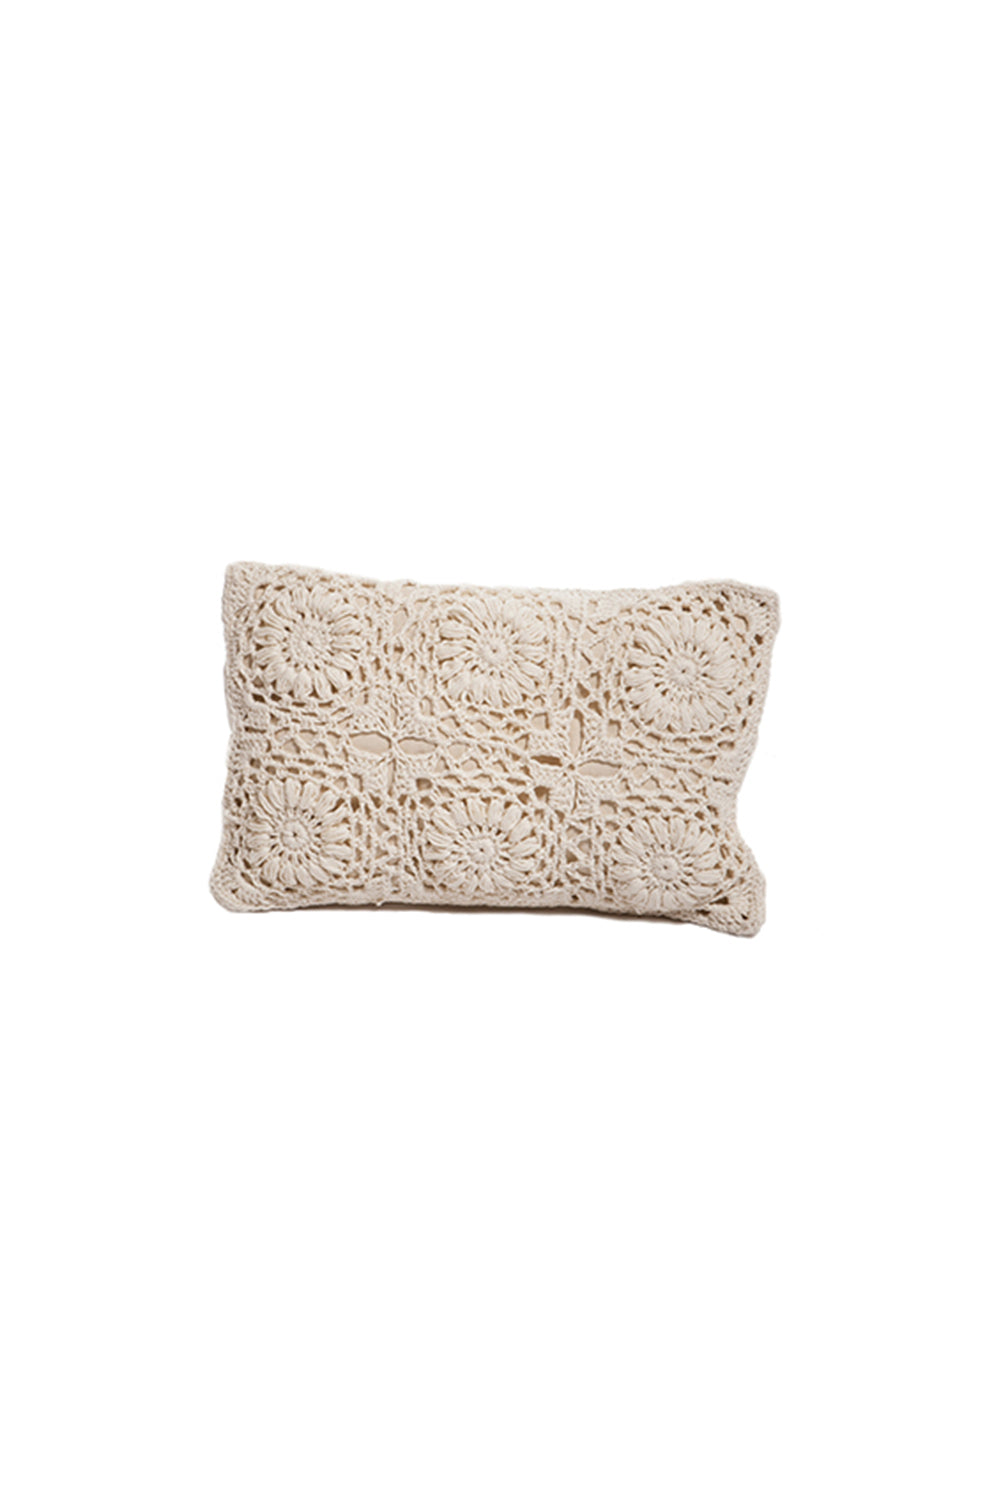 Carolina K Crochet Flower Rectangular Pillow